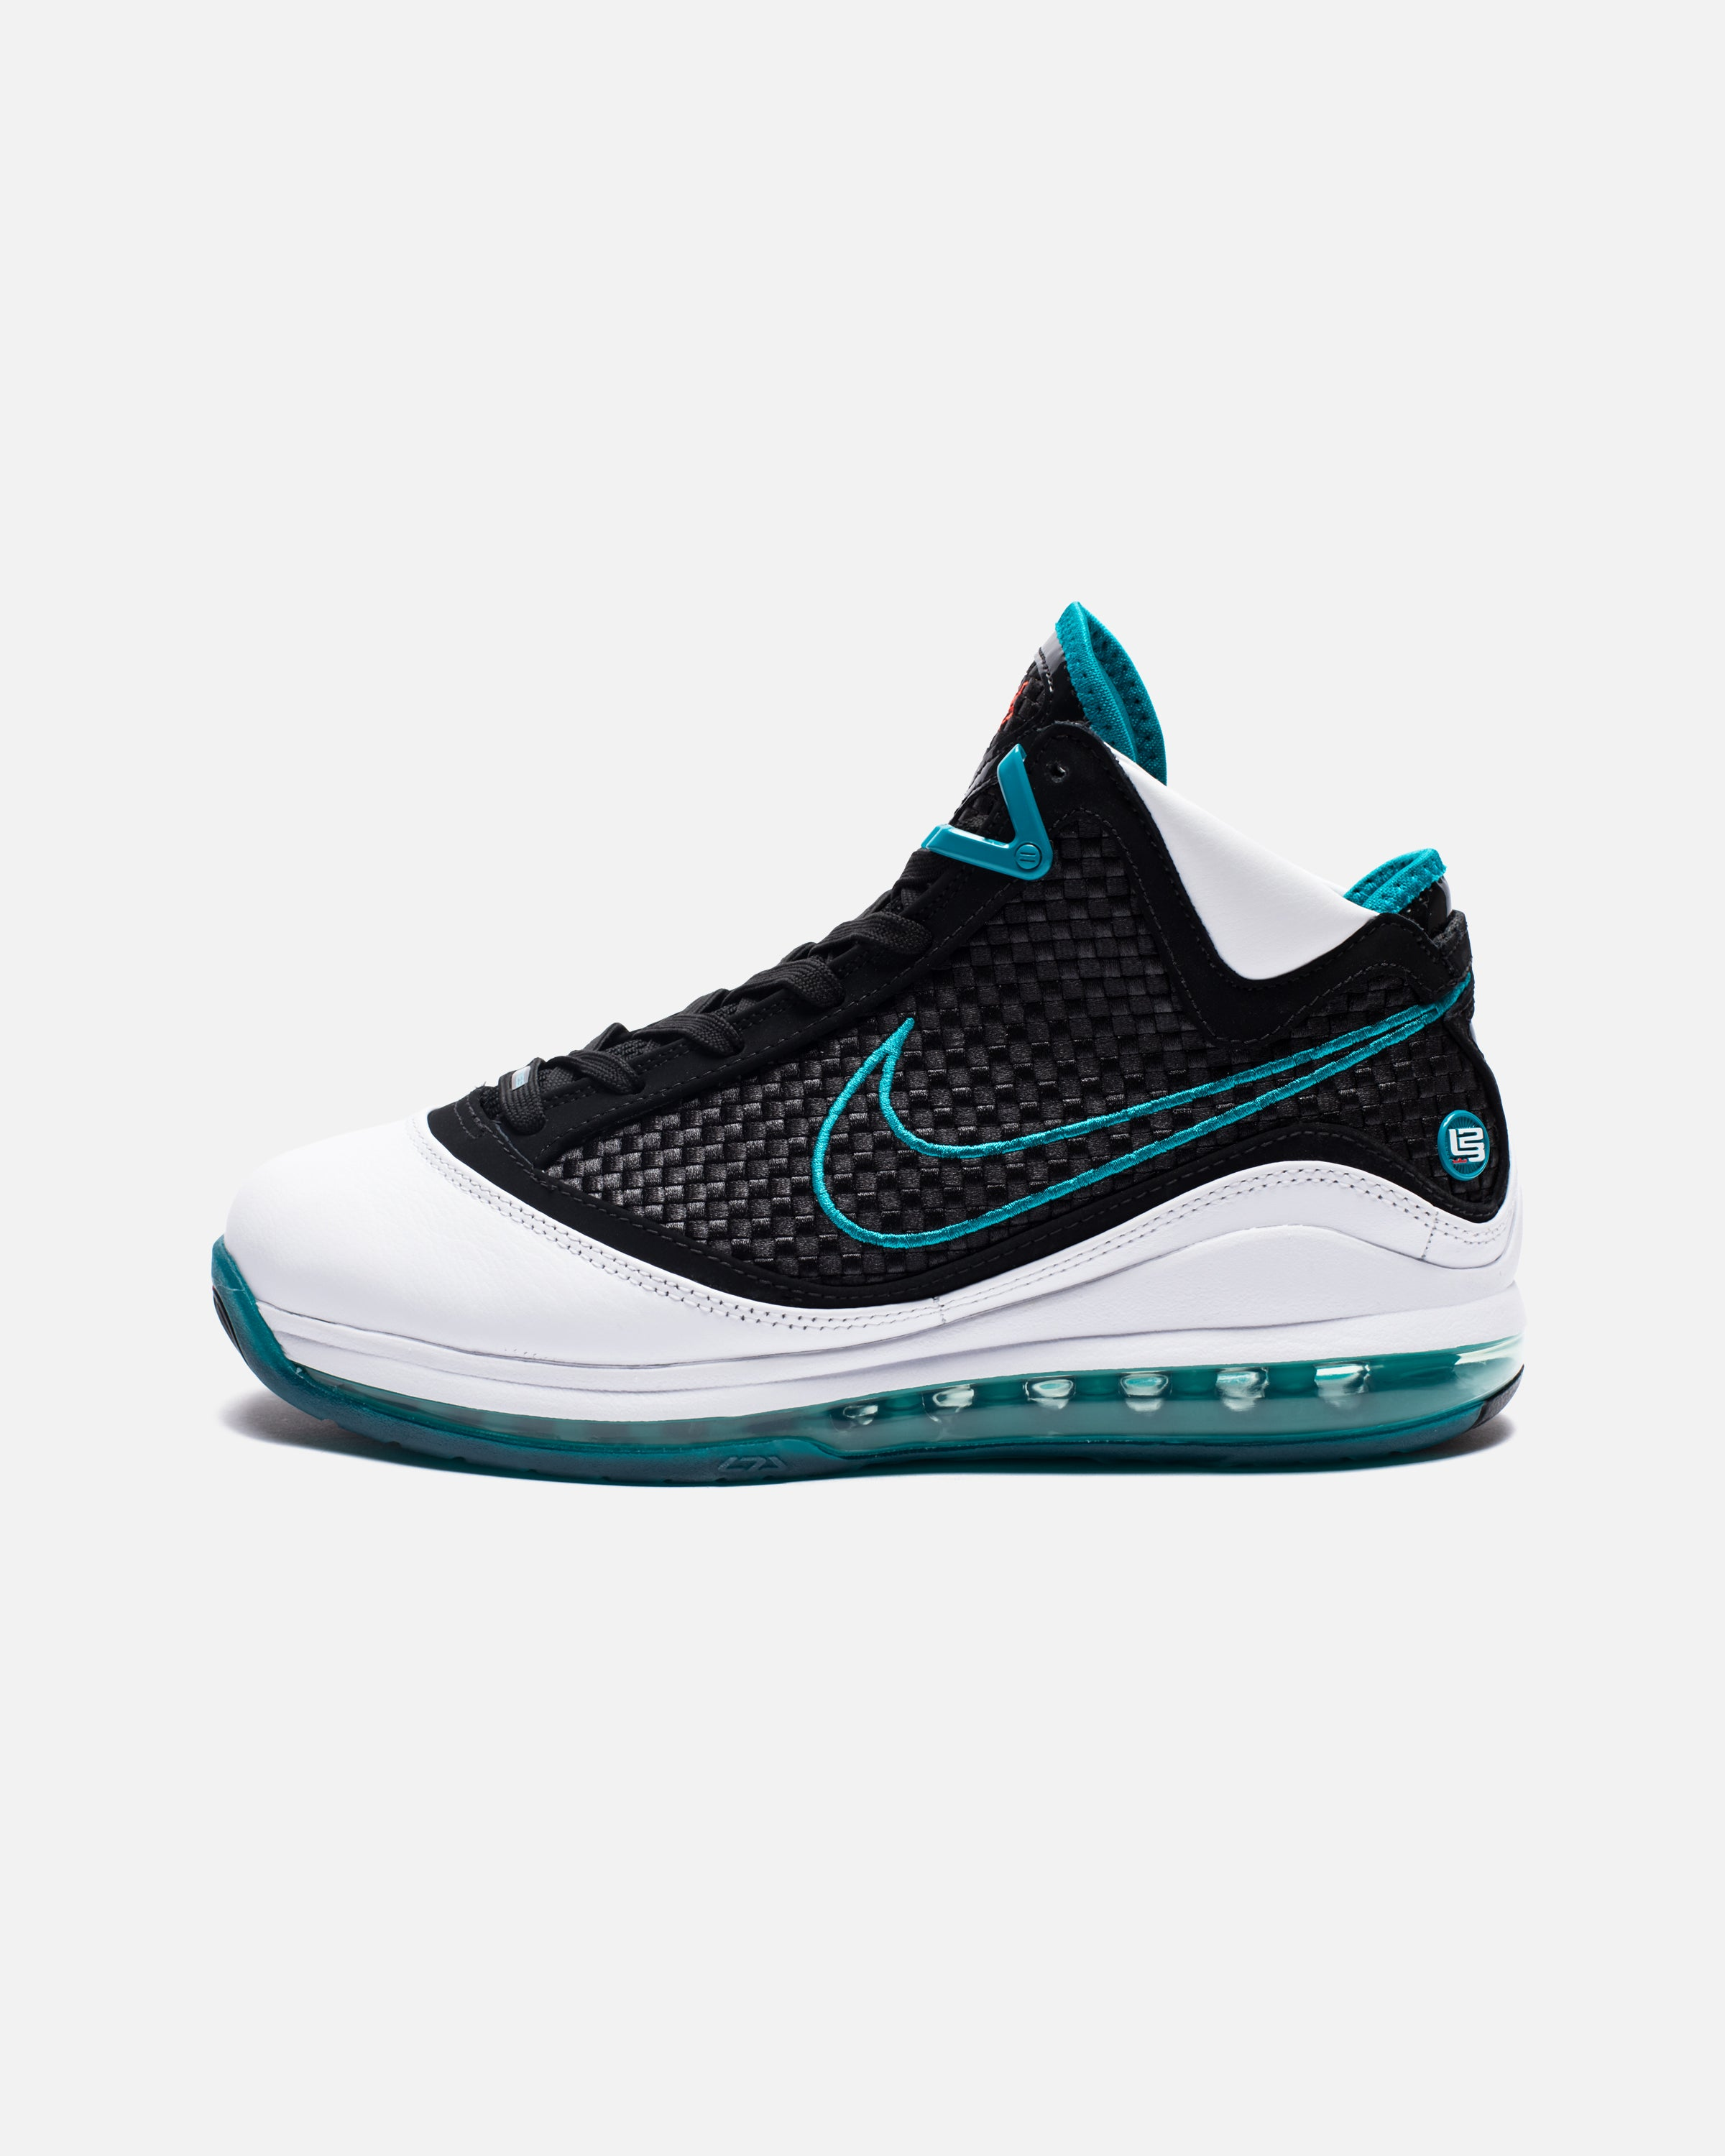 LEBRON VII QS - WHITE/BLACK/GLASSBLUE/CHALLENGERED